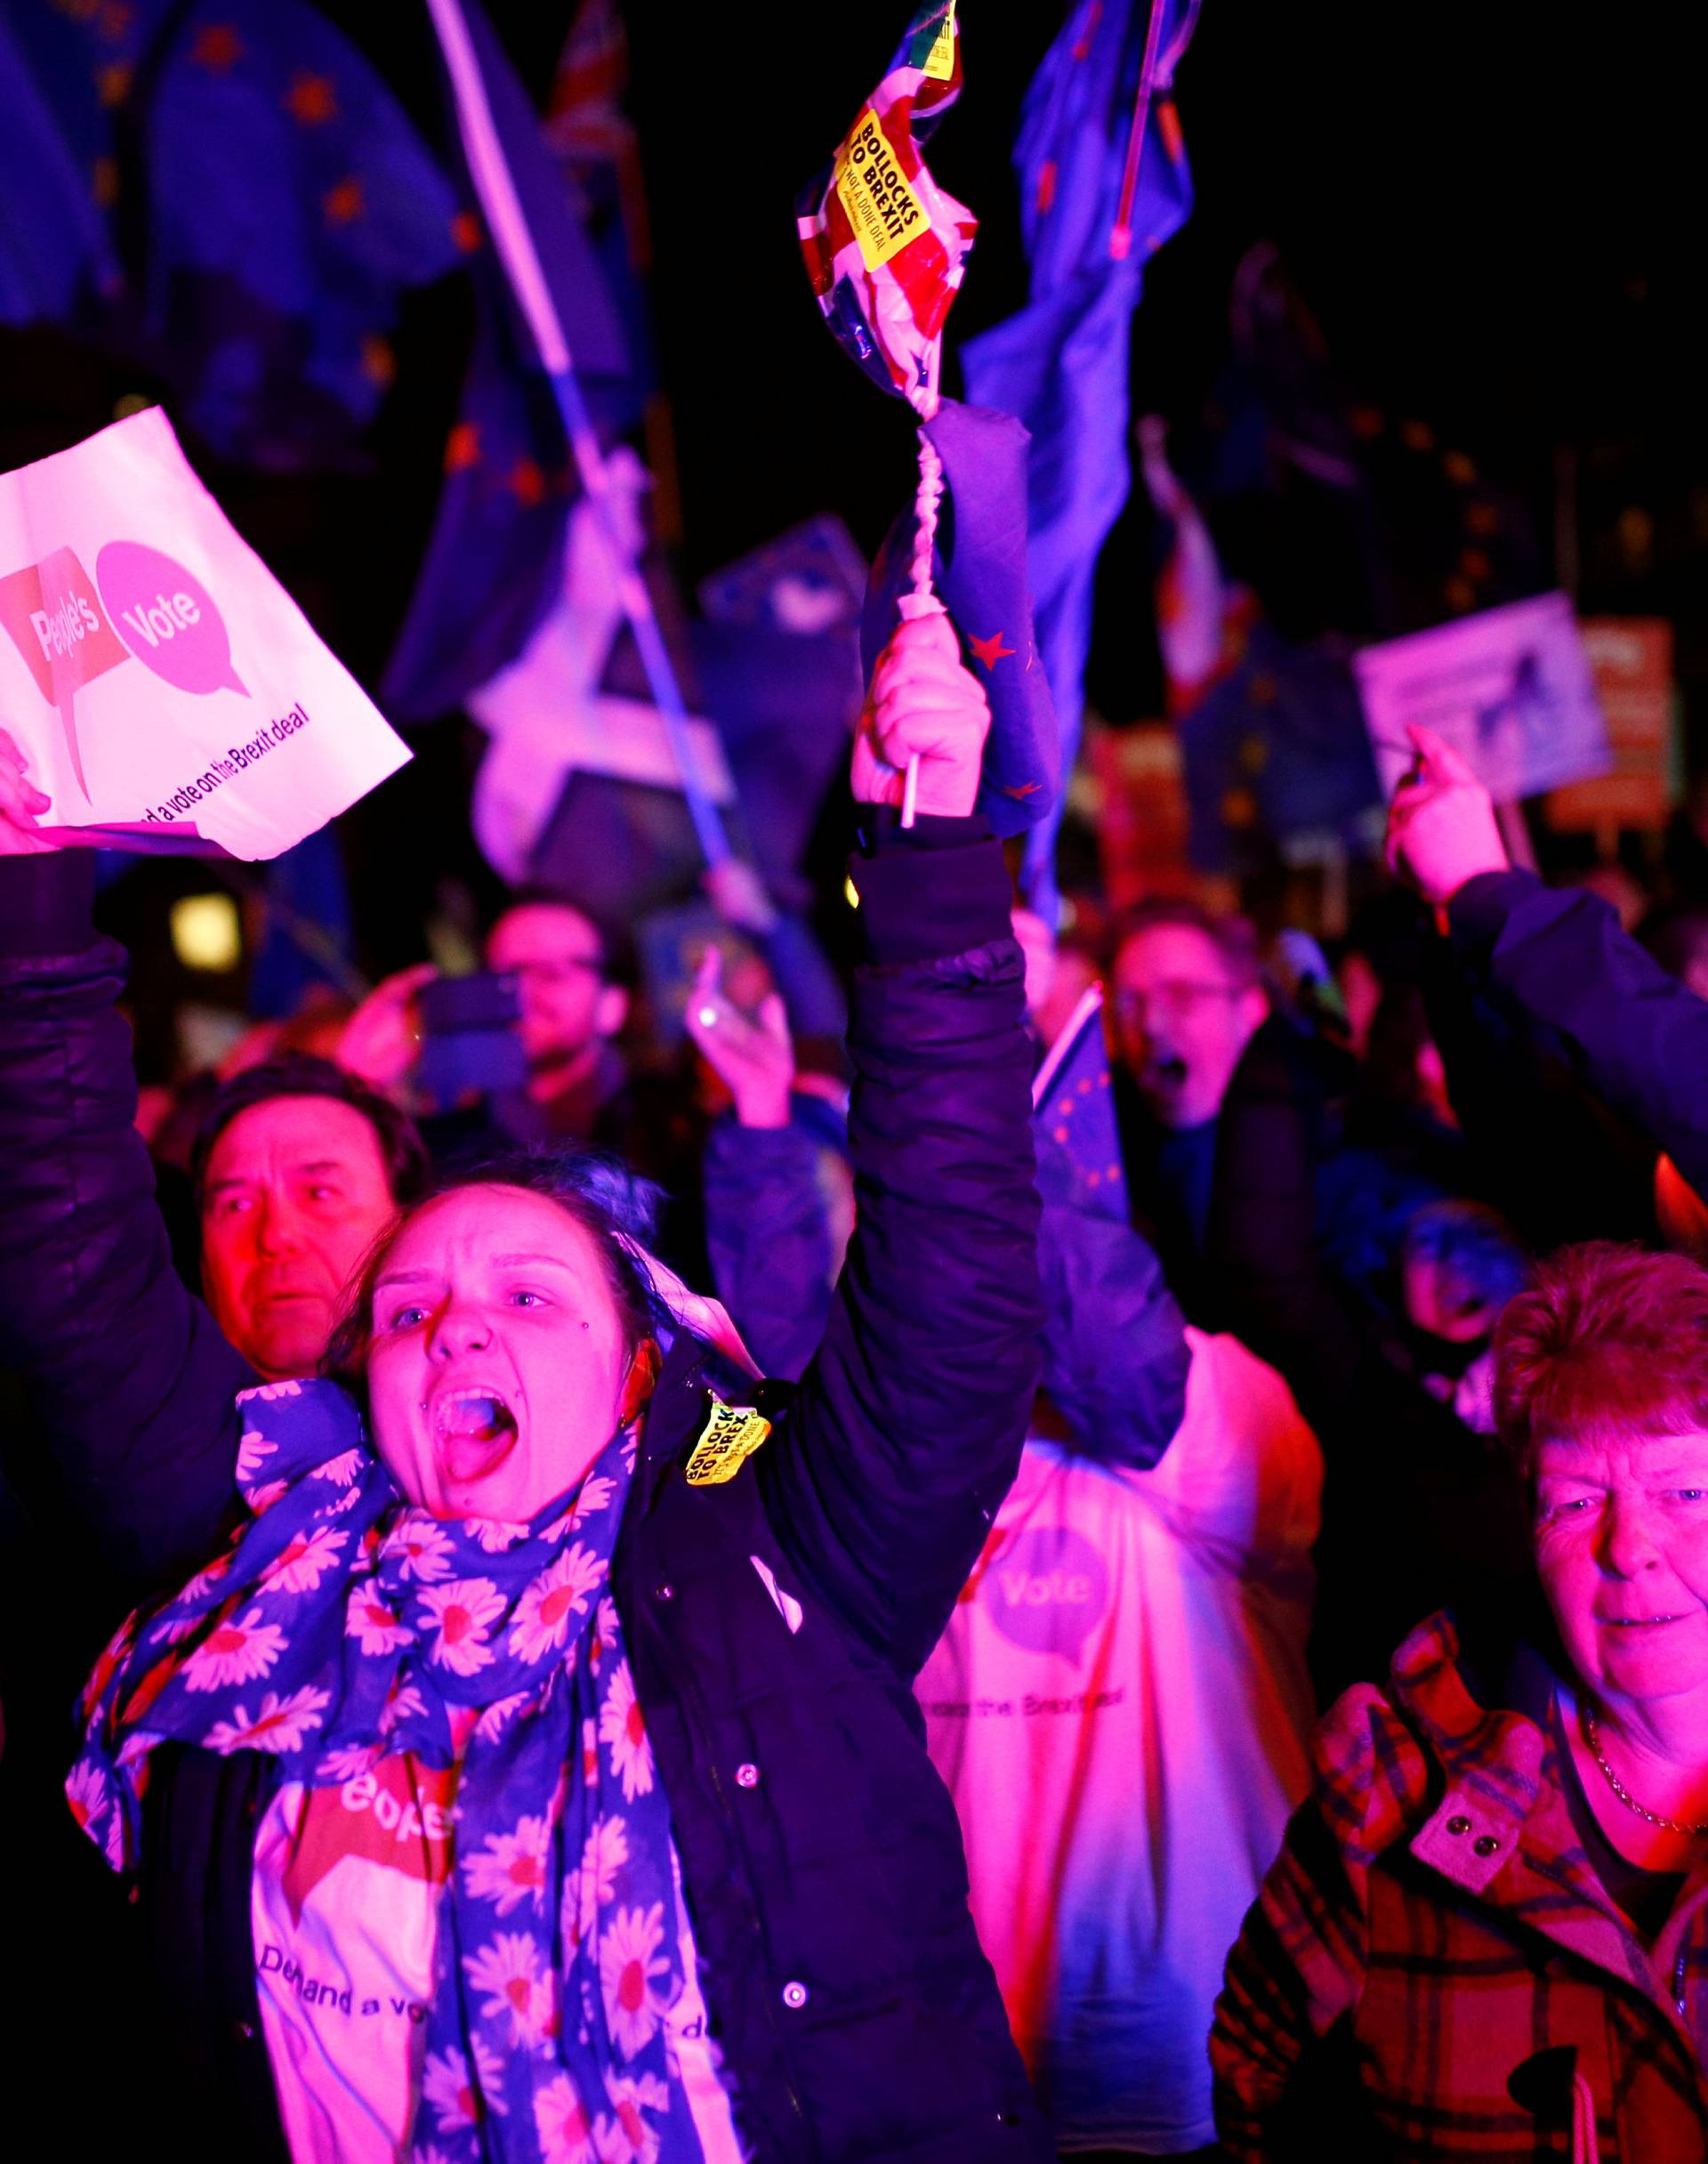 Protesters react after the result was announced on Prime Minister Theresa May's Brexit deal in London